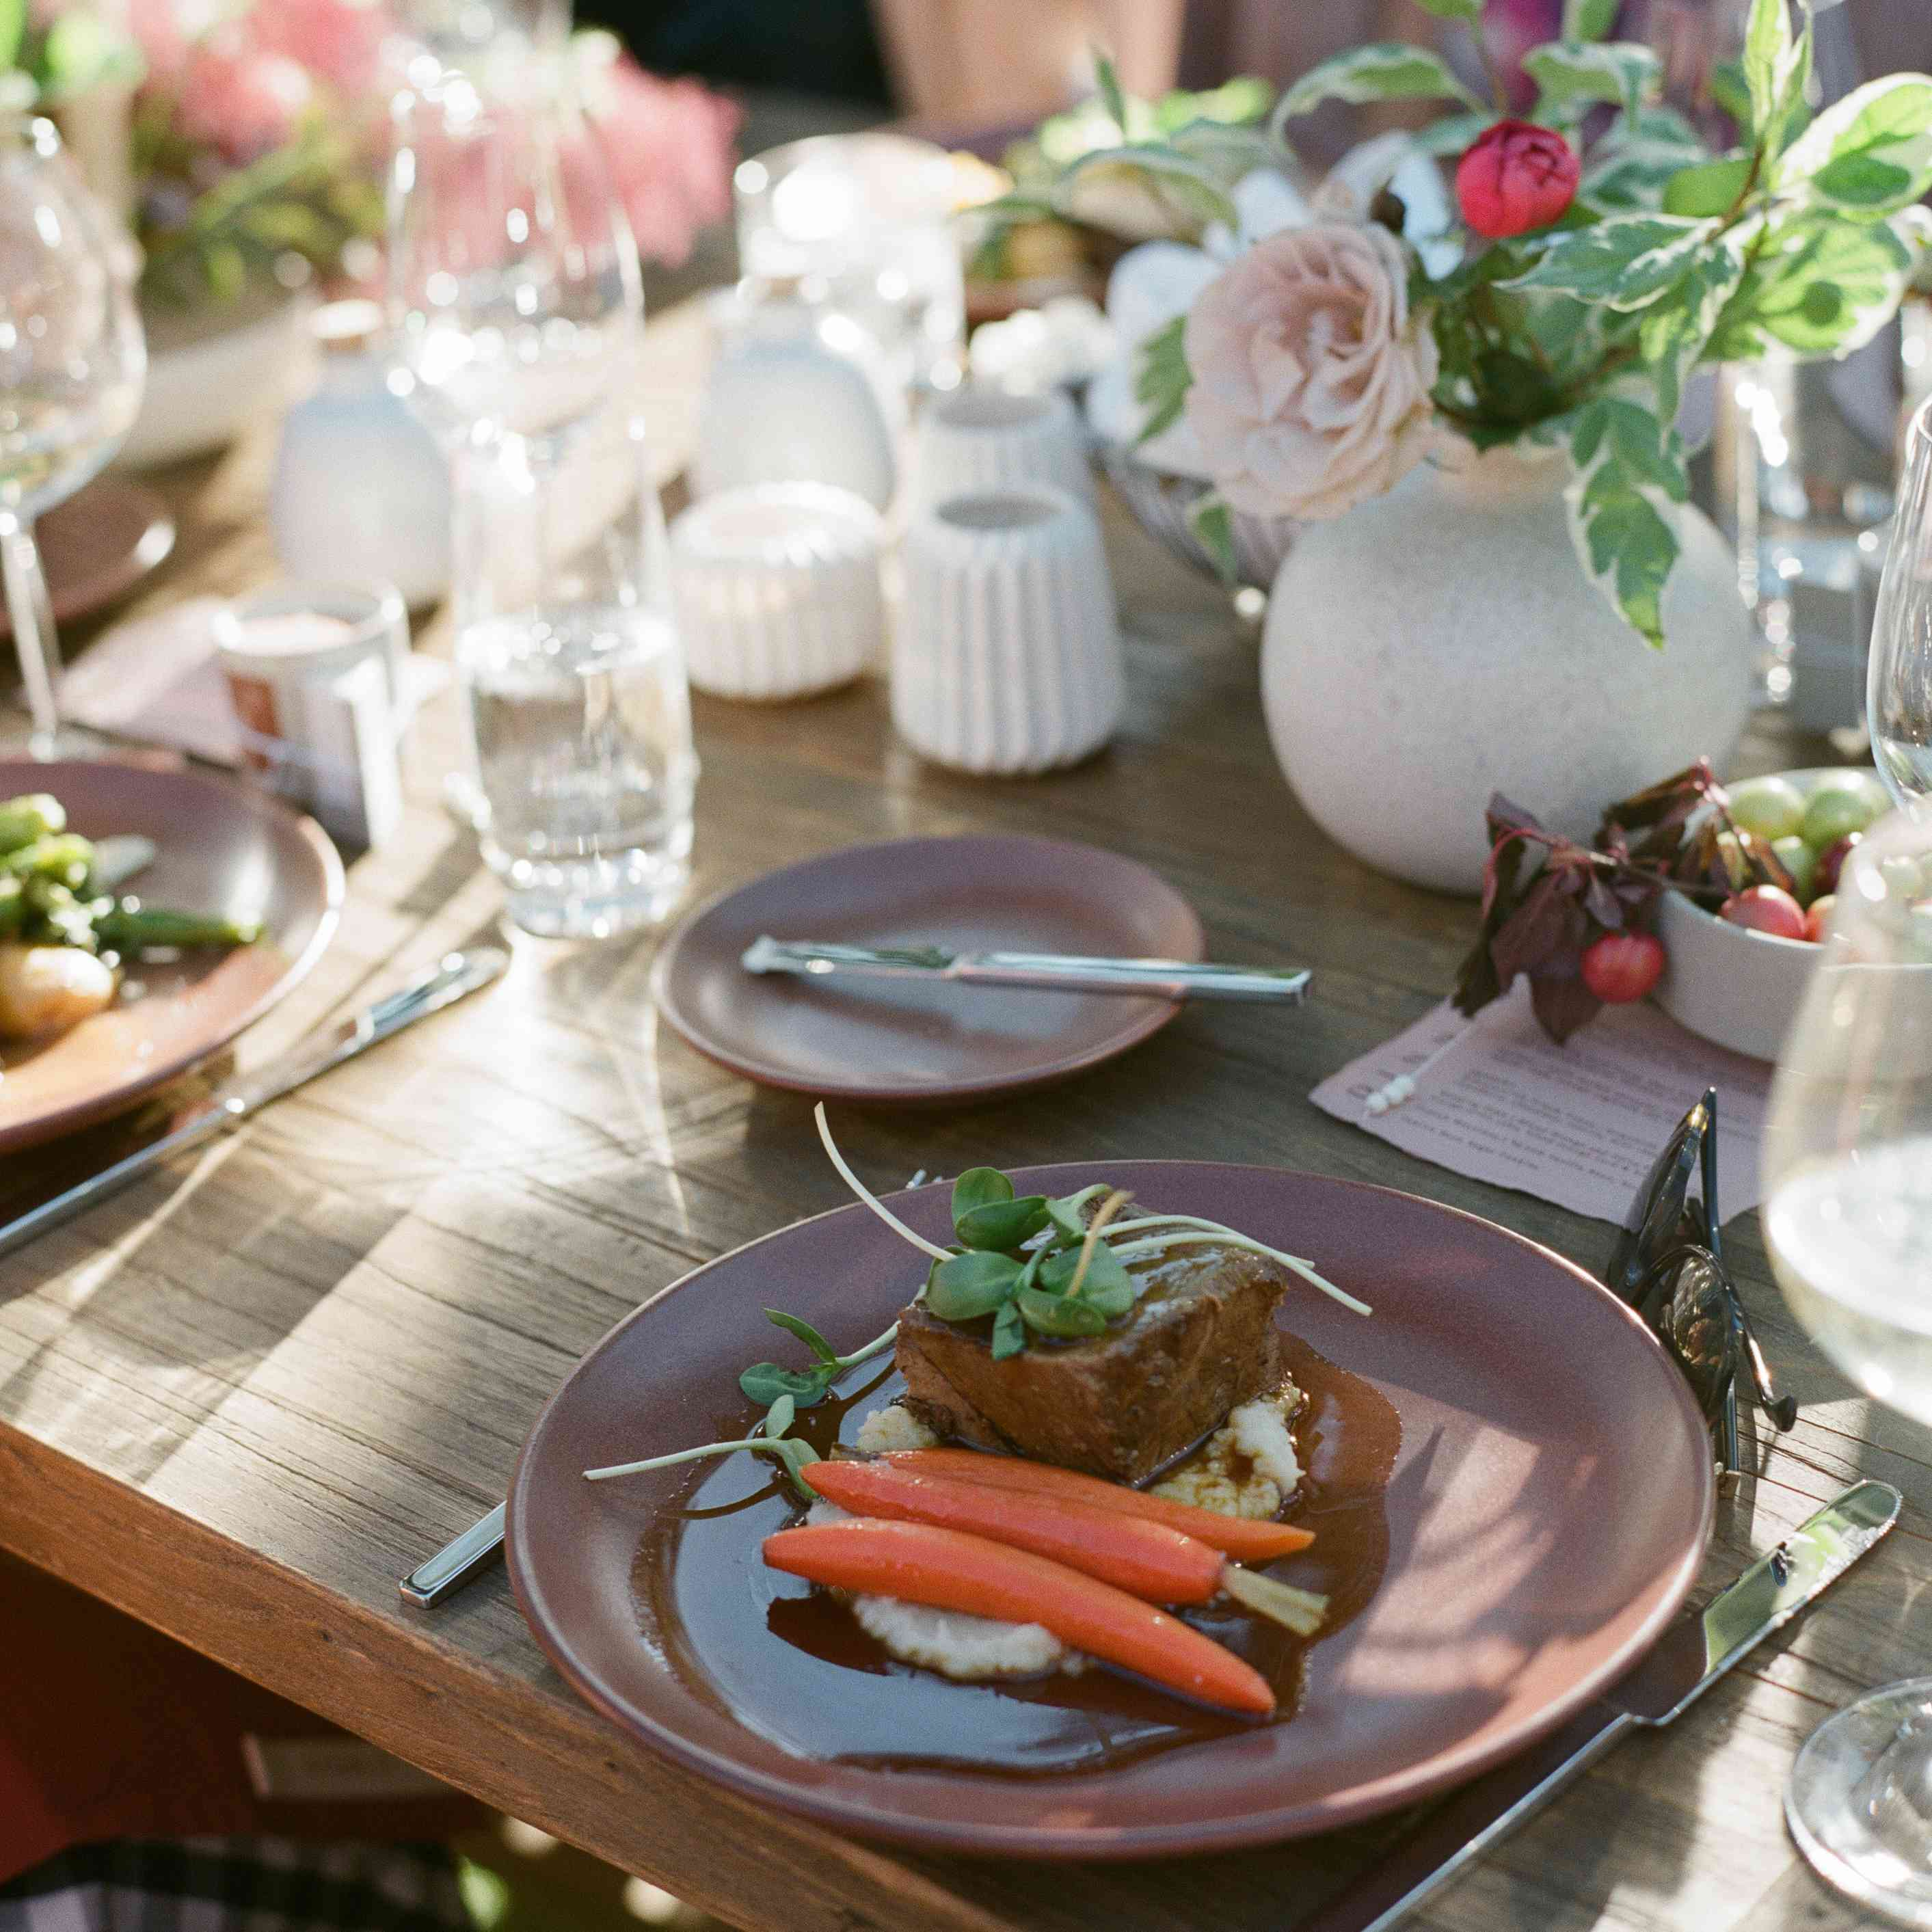 A plate of food with steak, carrots, and mashed potatoes at a wedding